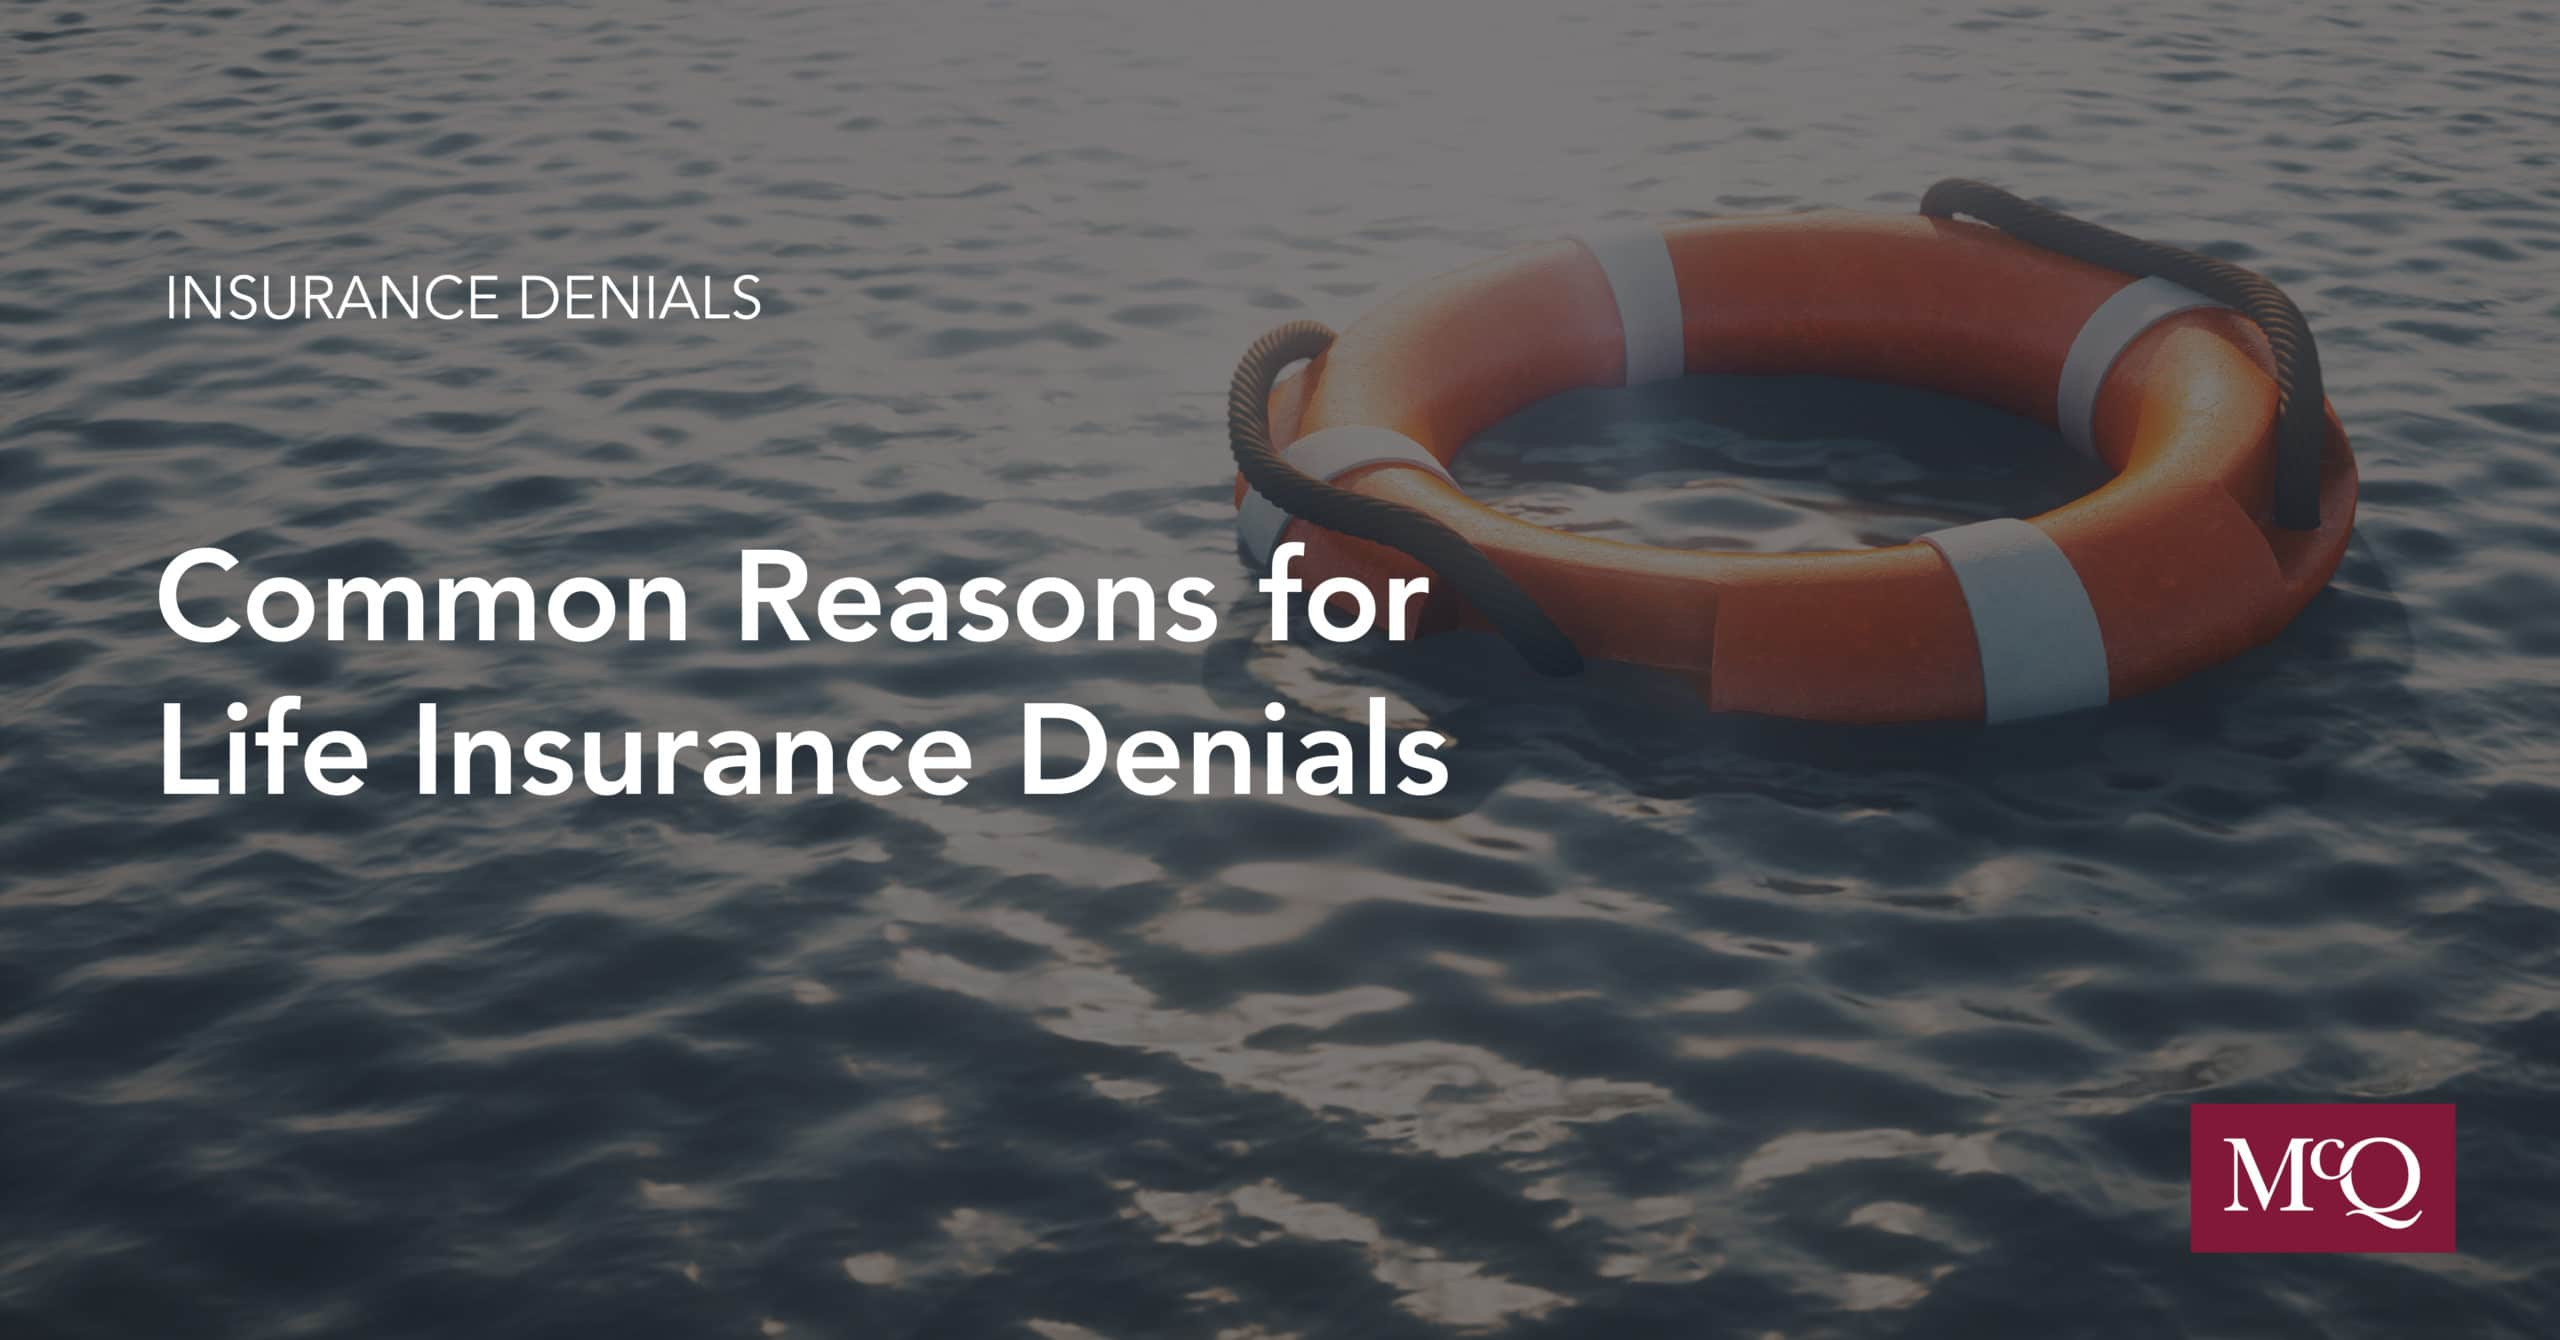 Common Reasons for Life Insurance Denial - Insurance Denial Blog McQuarrie